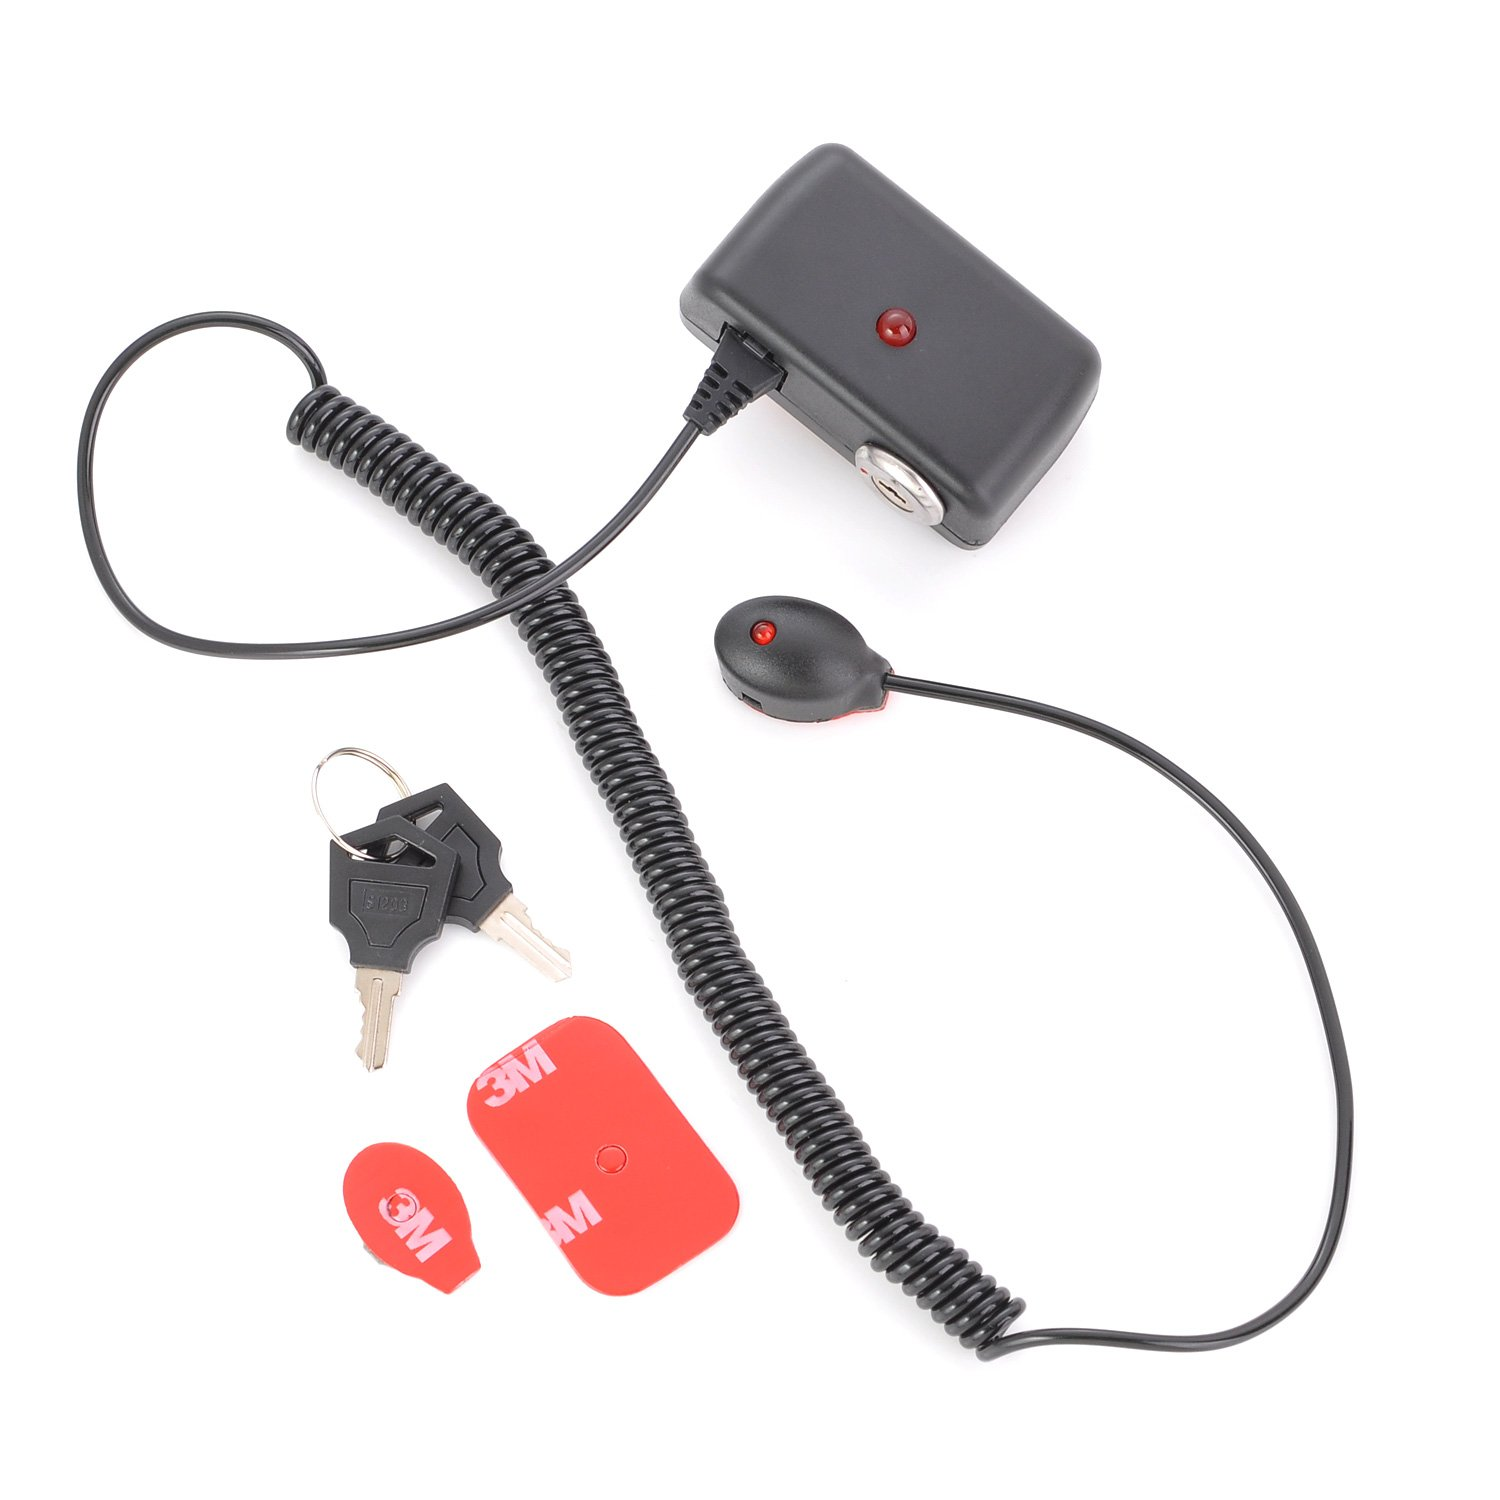 123lockz [Black] Retail Security Anti-Theft Mini Loop Alarm with Coiled Cable for Shop Display Merchandise